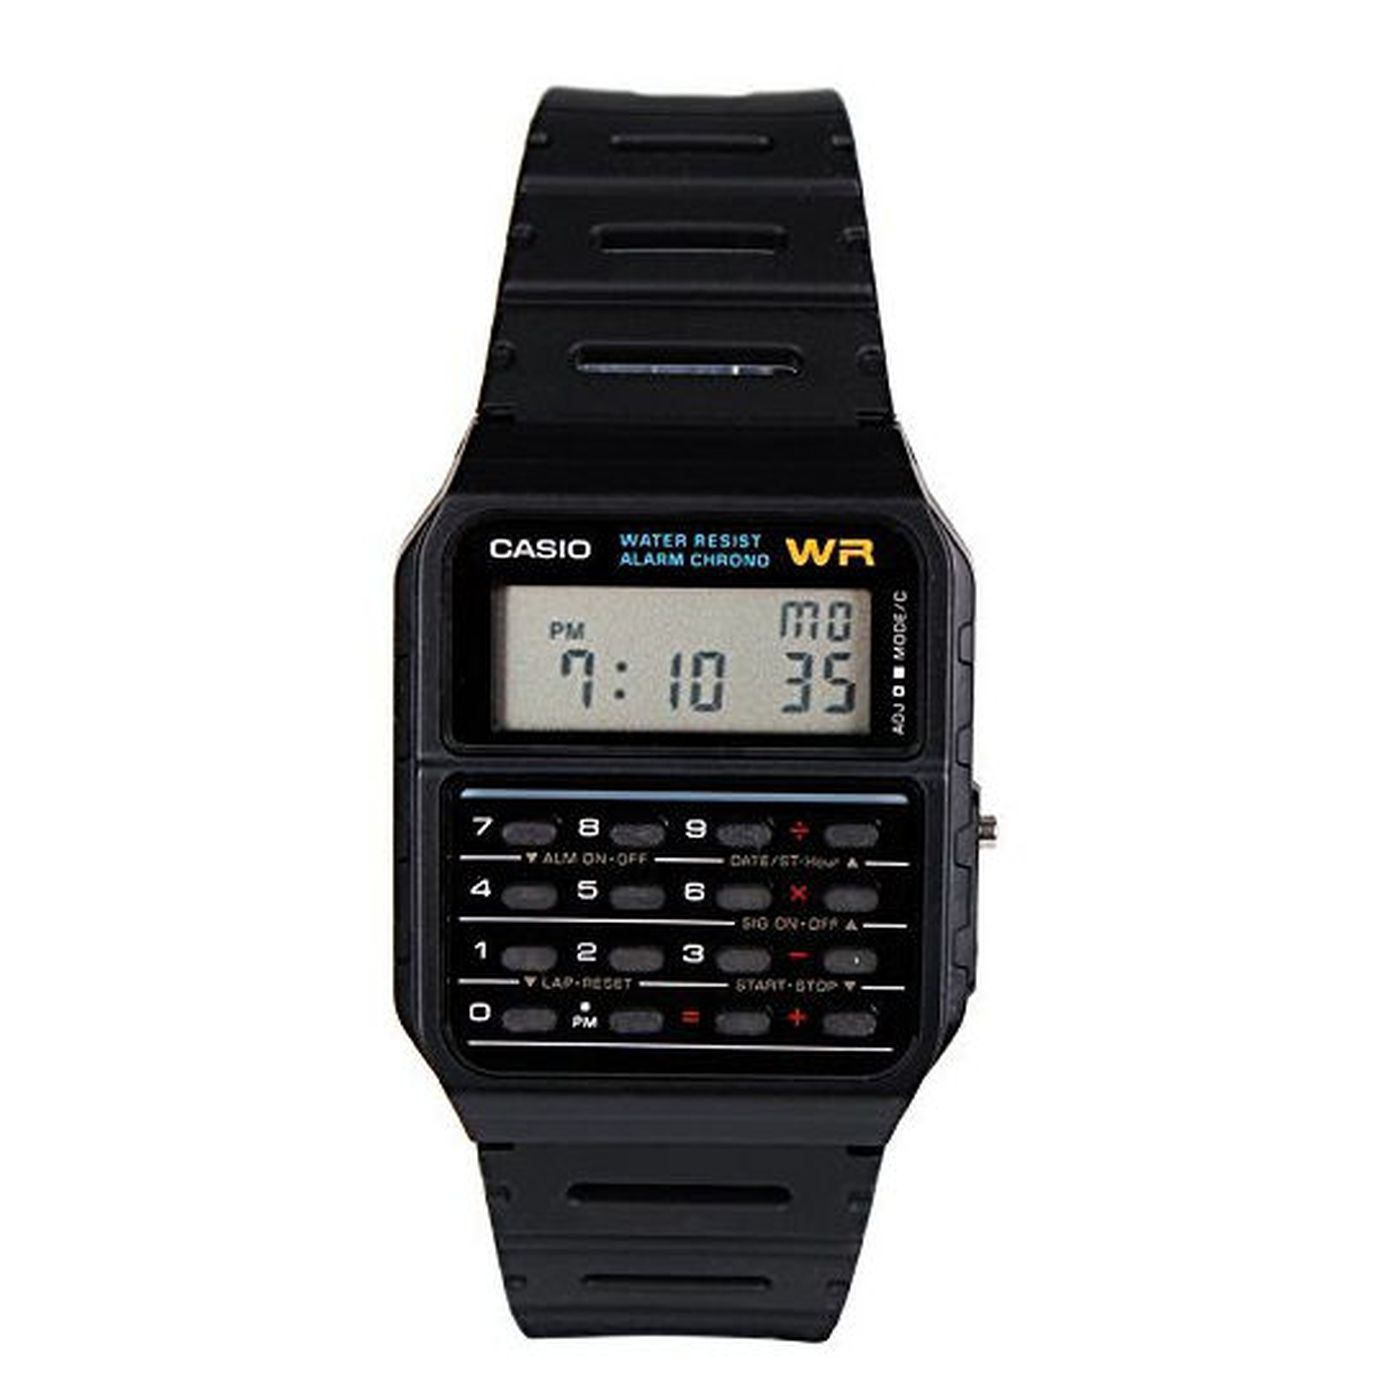 0fc541fcd2f1 This Casio Calculator Watch Is Better Than Apple Watch (According to Amazon  Reviews)